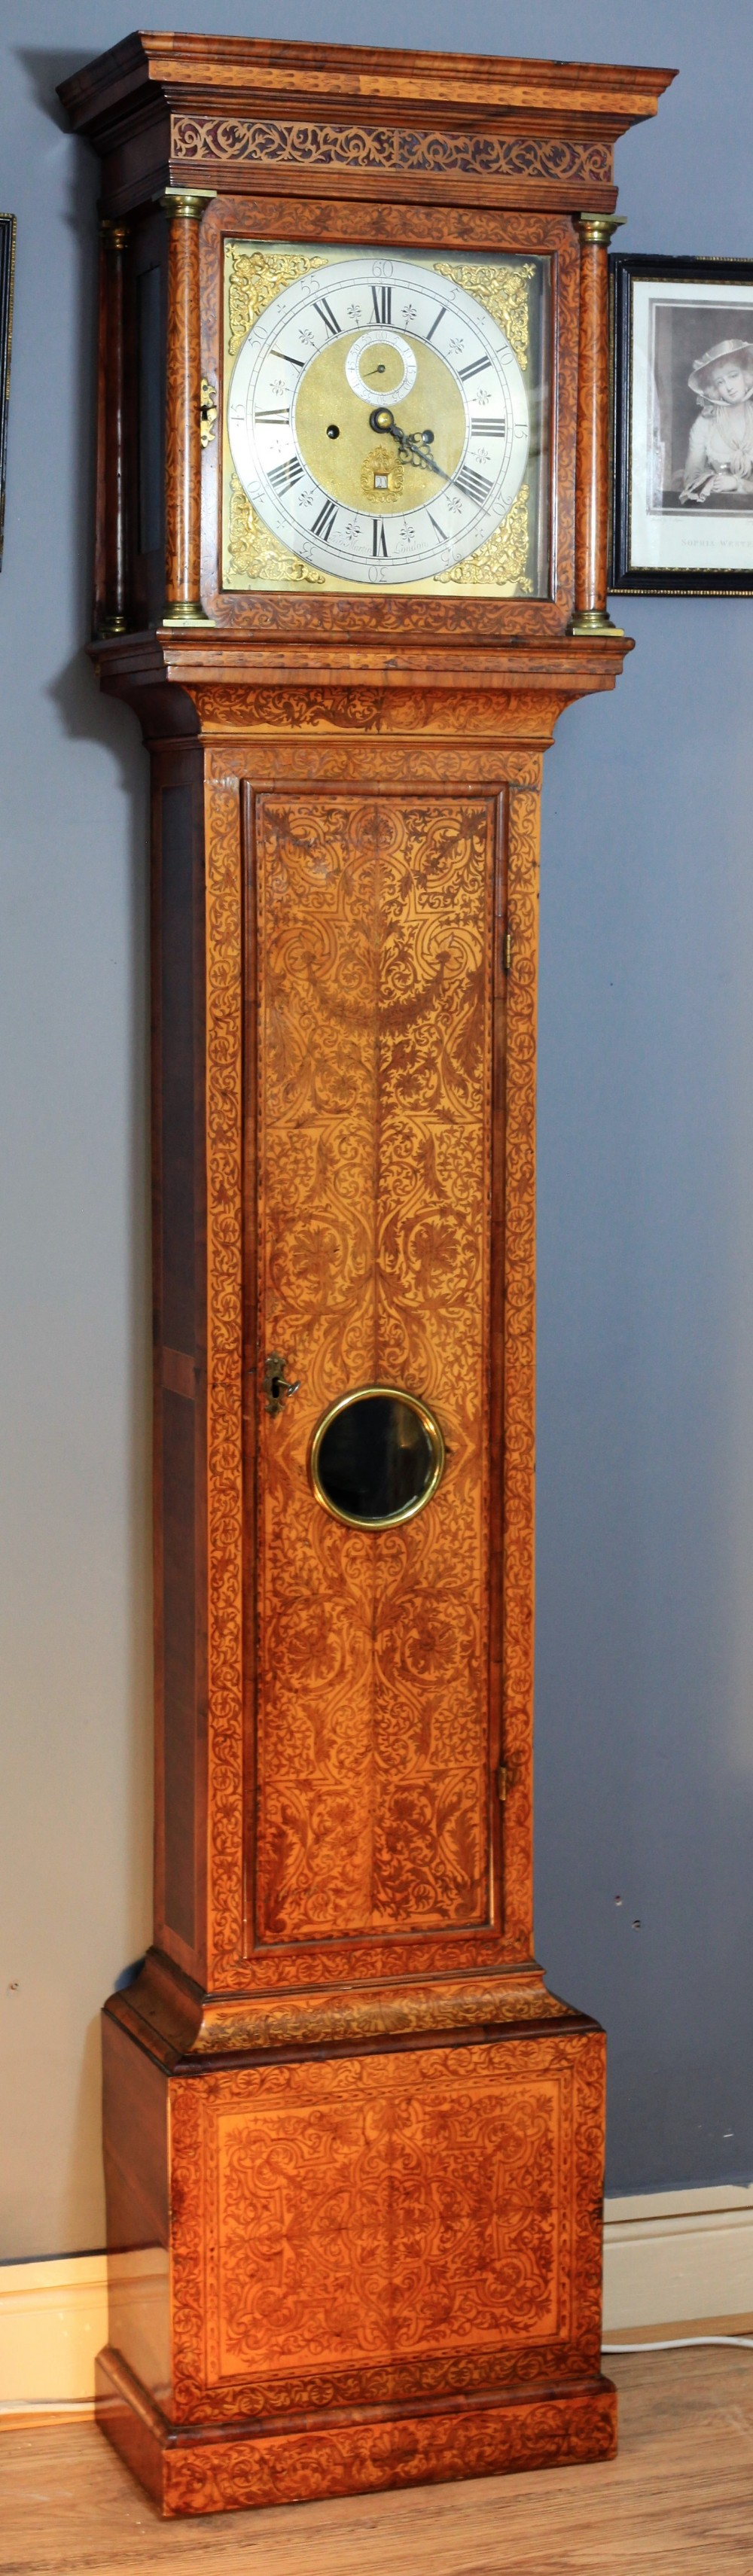 a superb queen anne marquetry longcase clock by thomas martin c1700